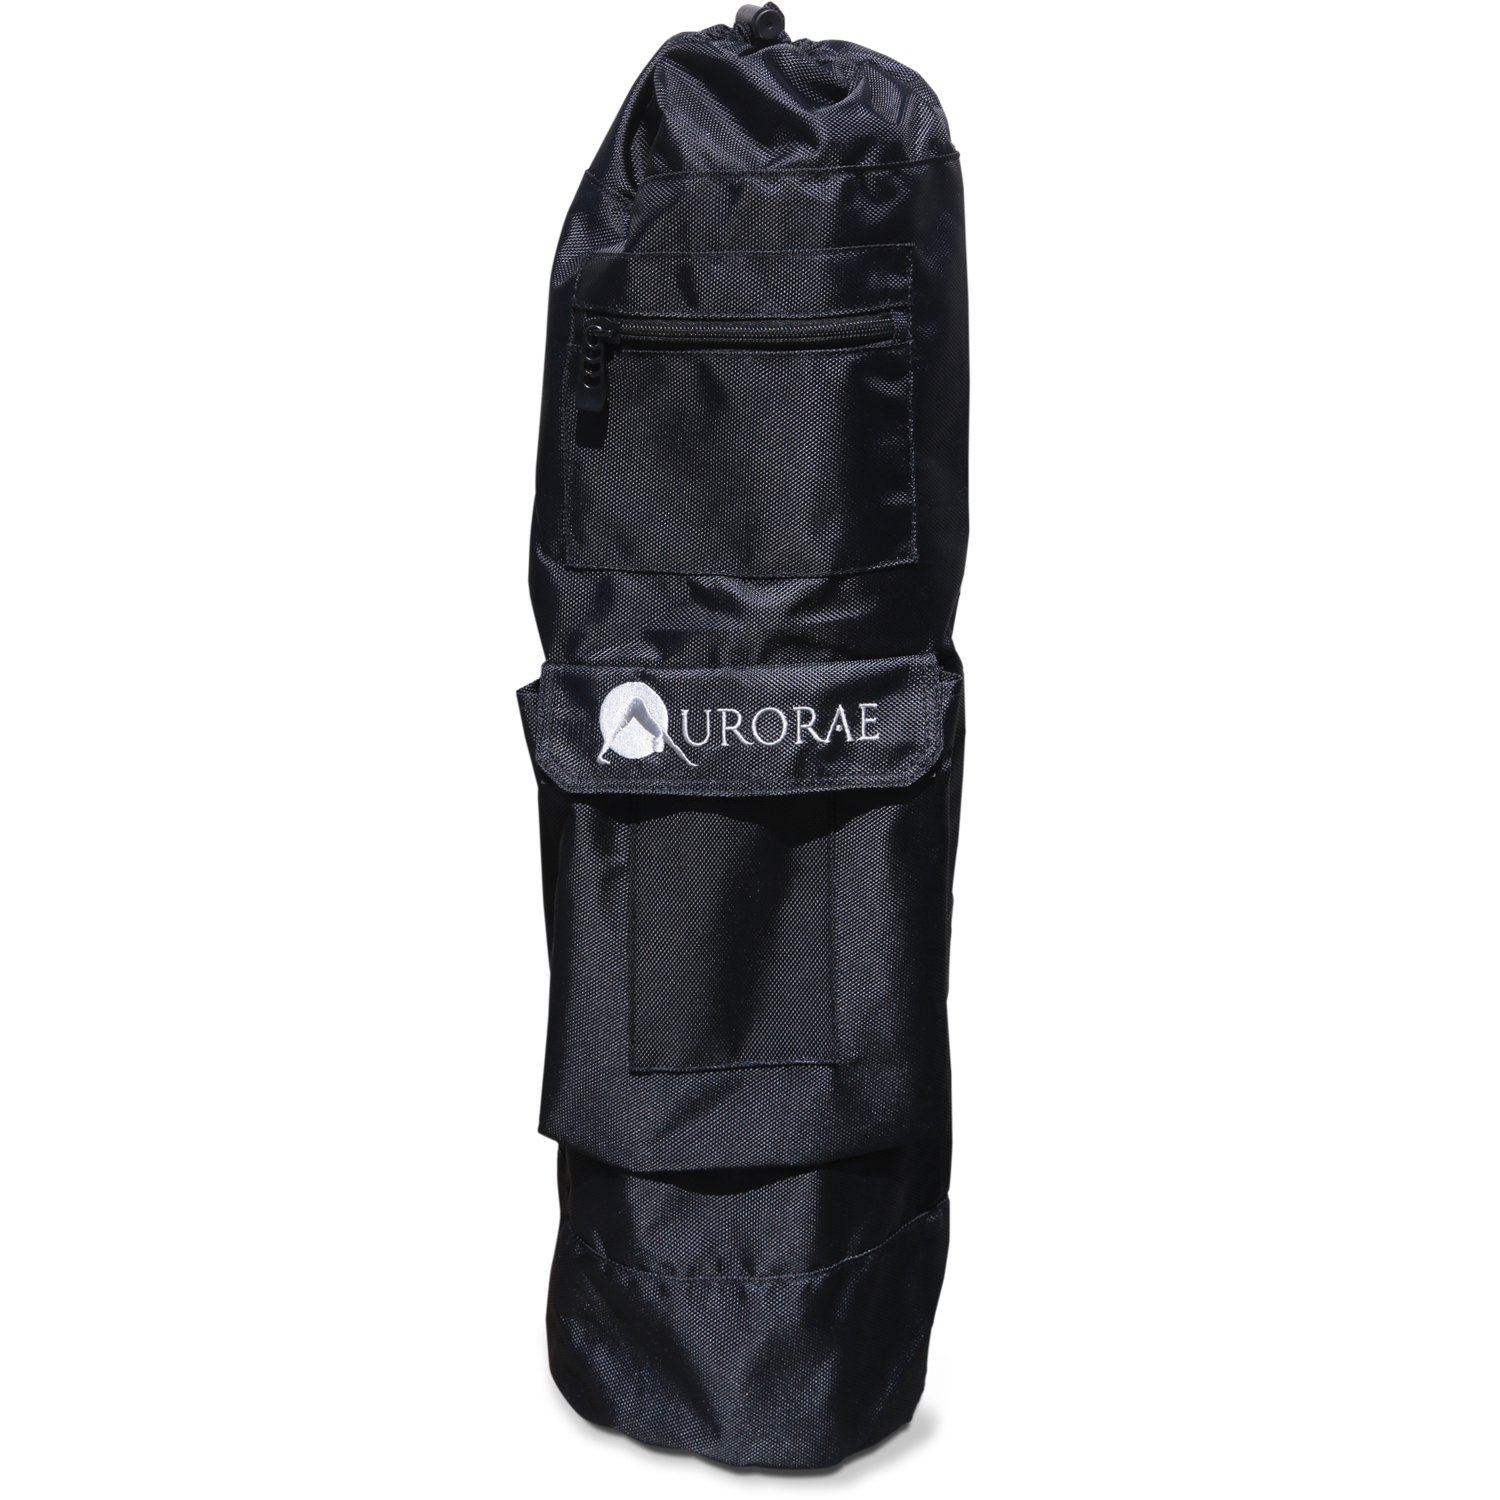 Aurorae Yoga Mat Bag; The Sak